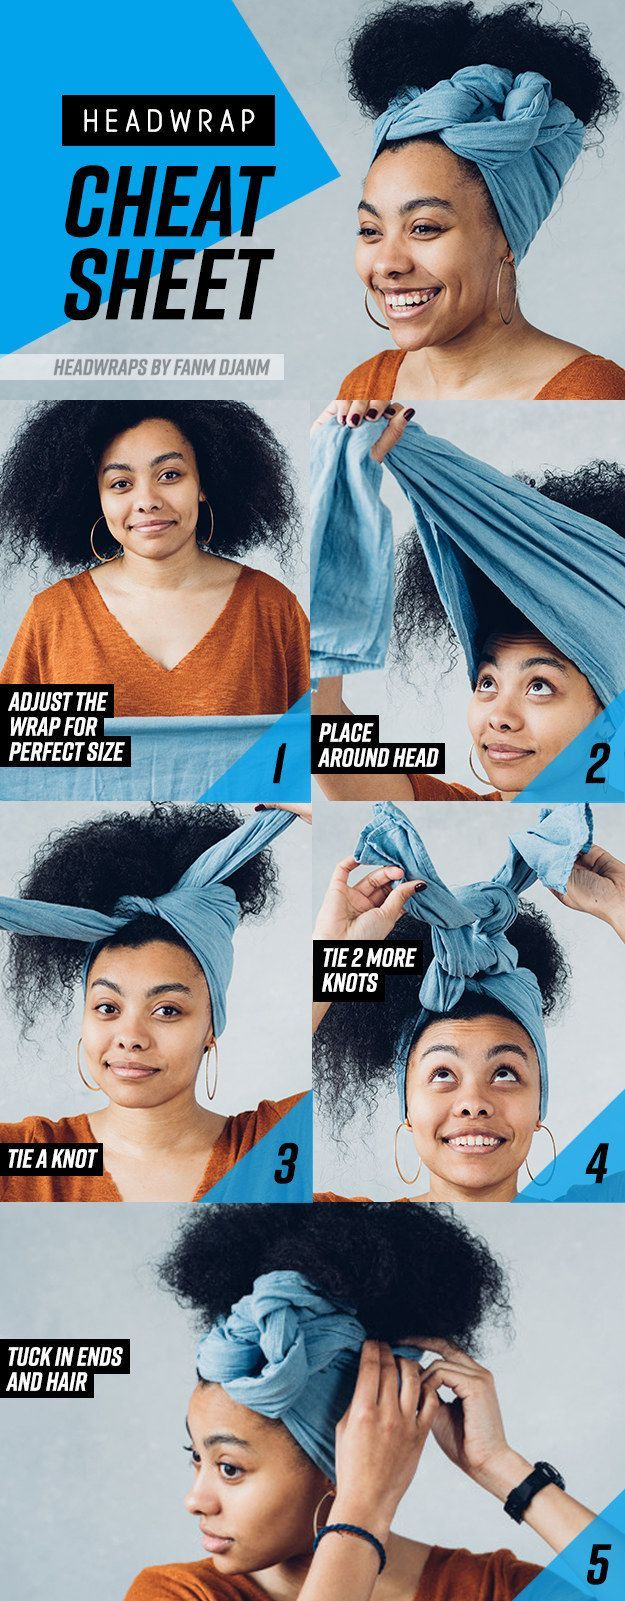 17 Ideas For When Your Hair Is Just Not Doing What It's Supposed To